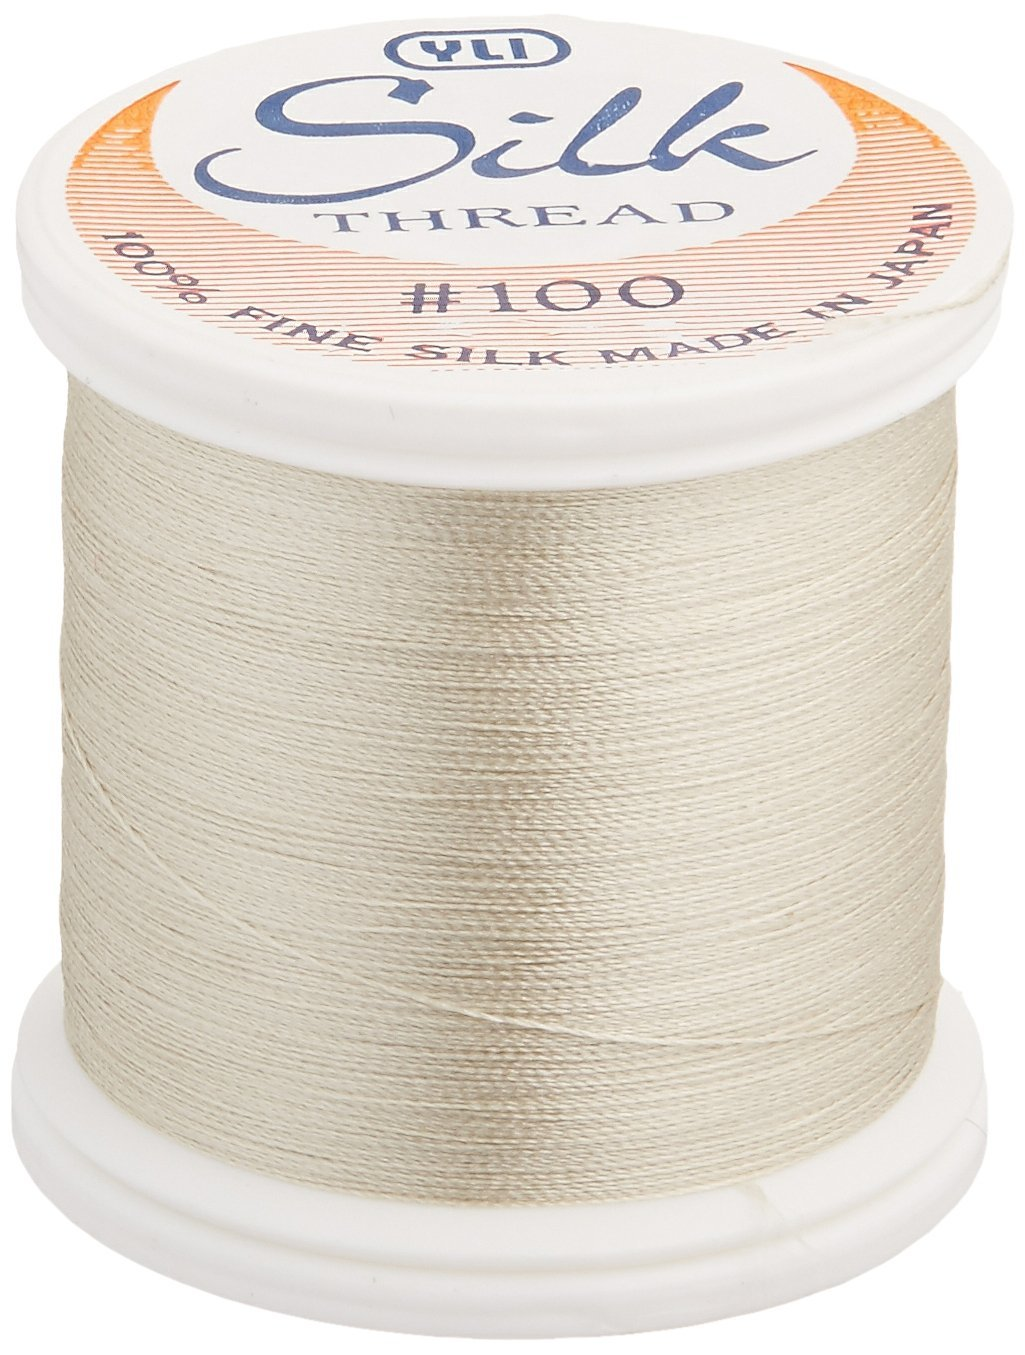 Silk Thread 100 Weight 200 Meters- Notions - In Network 20210-239